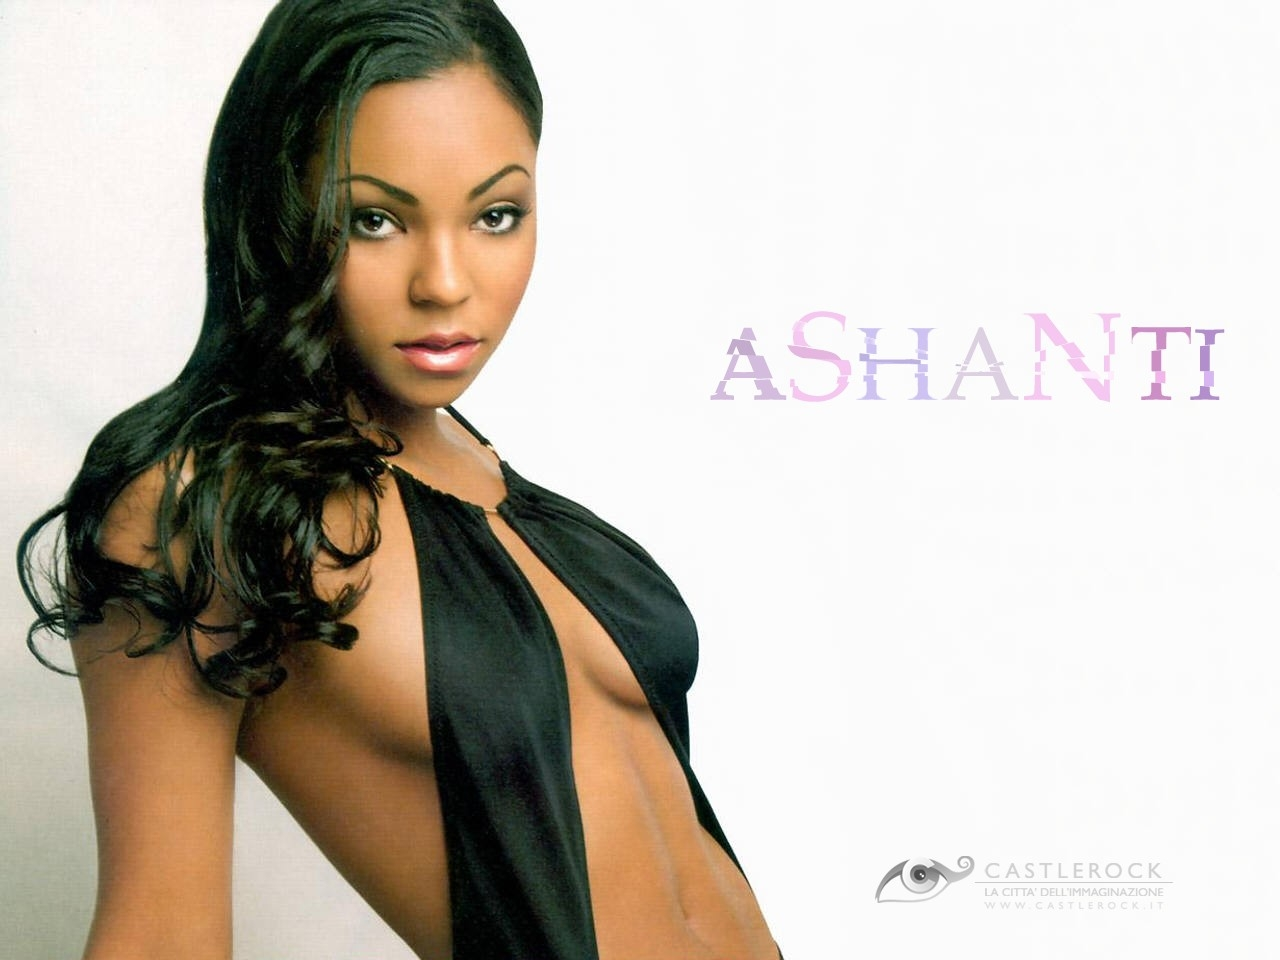 Wallpaper di Ashanti